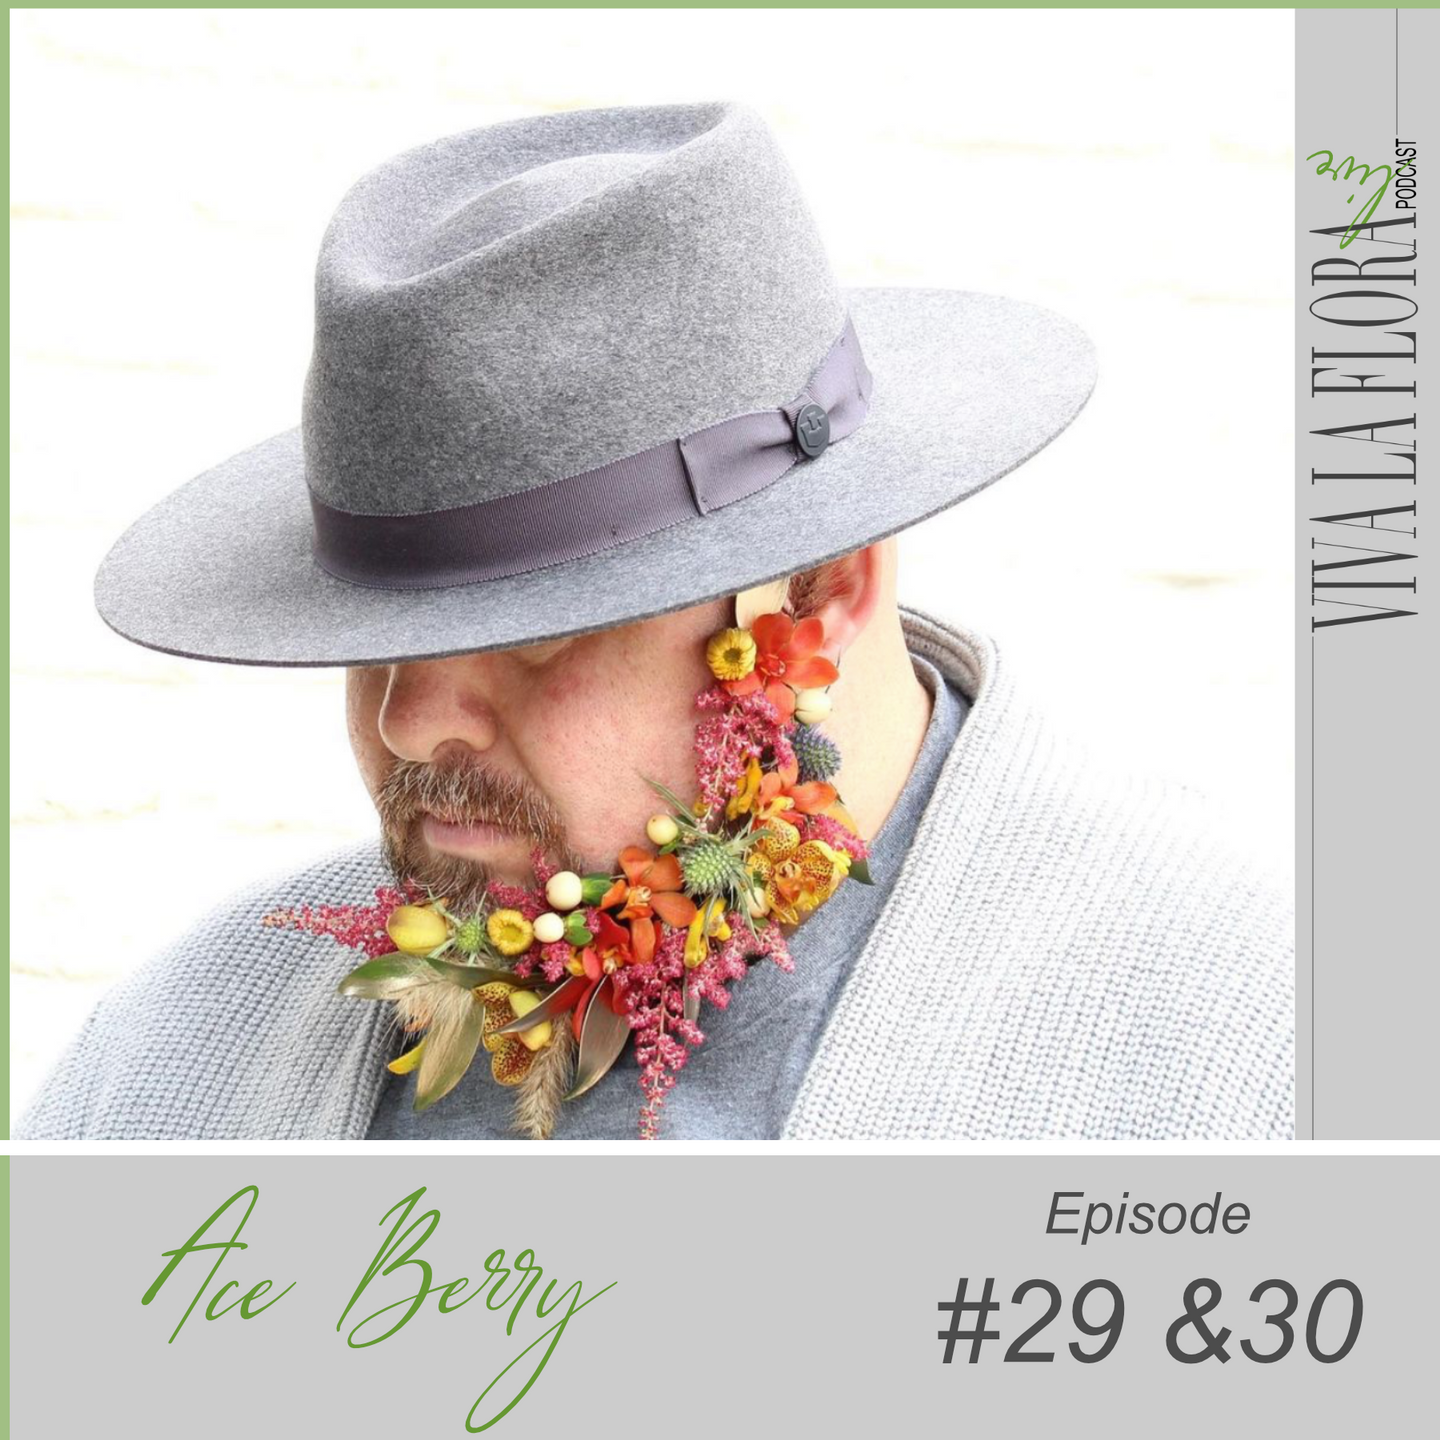 guy with flowers in his beard and fedora hat